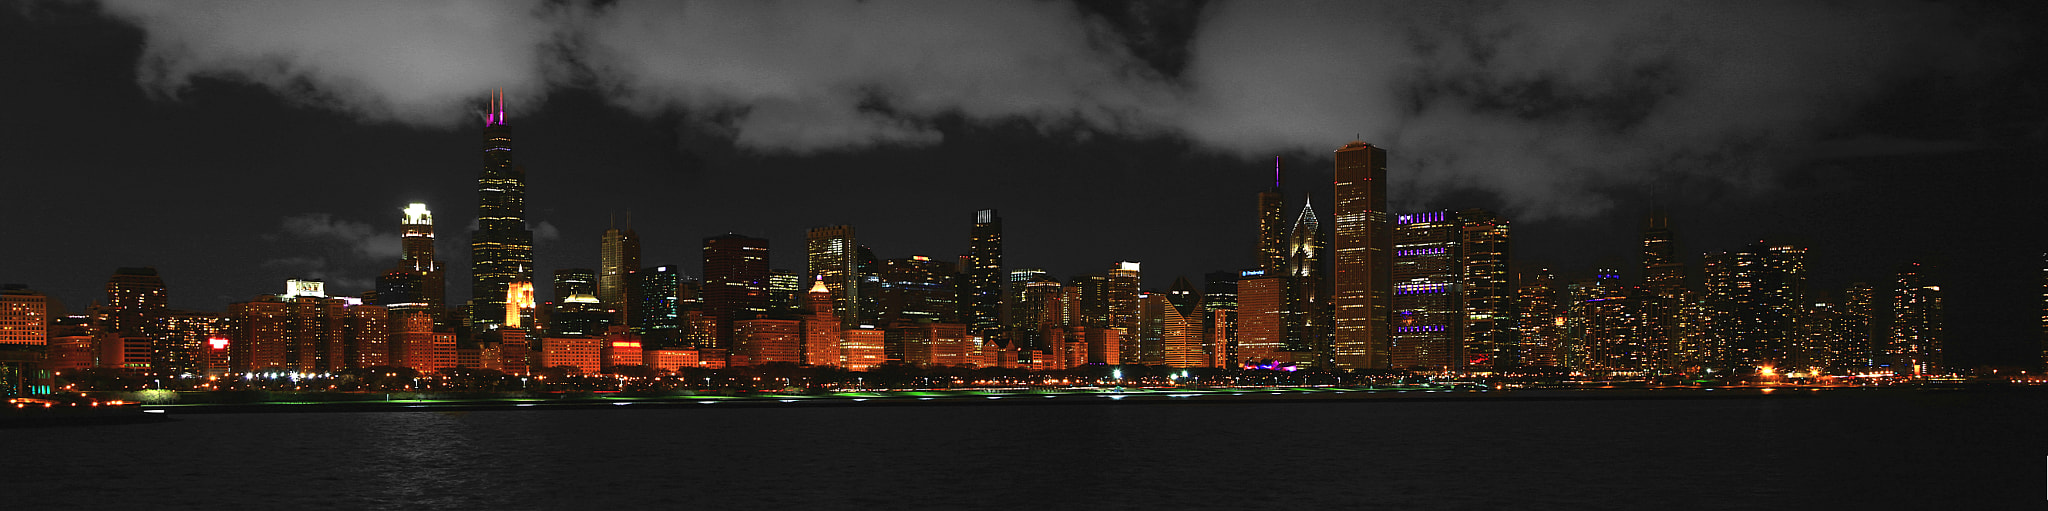 Photograph Chicago Skyline by Dave Dow on 500px